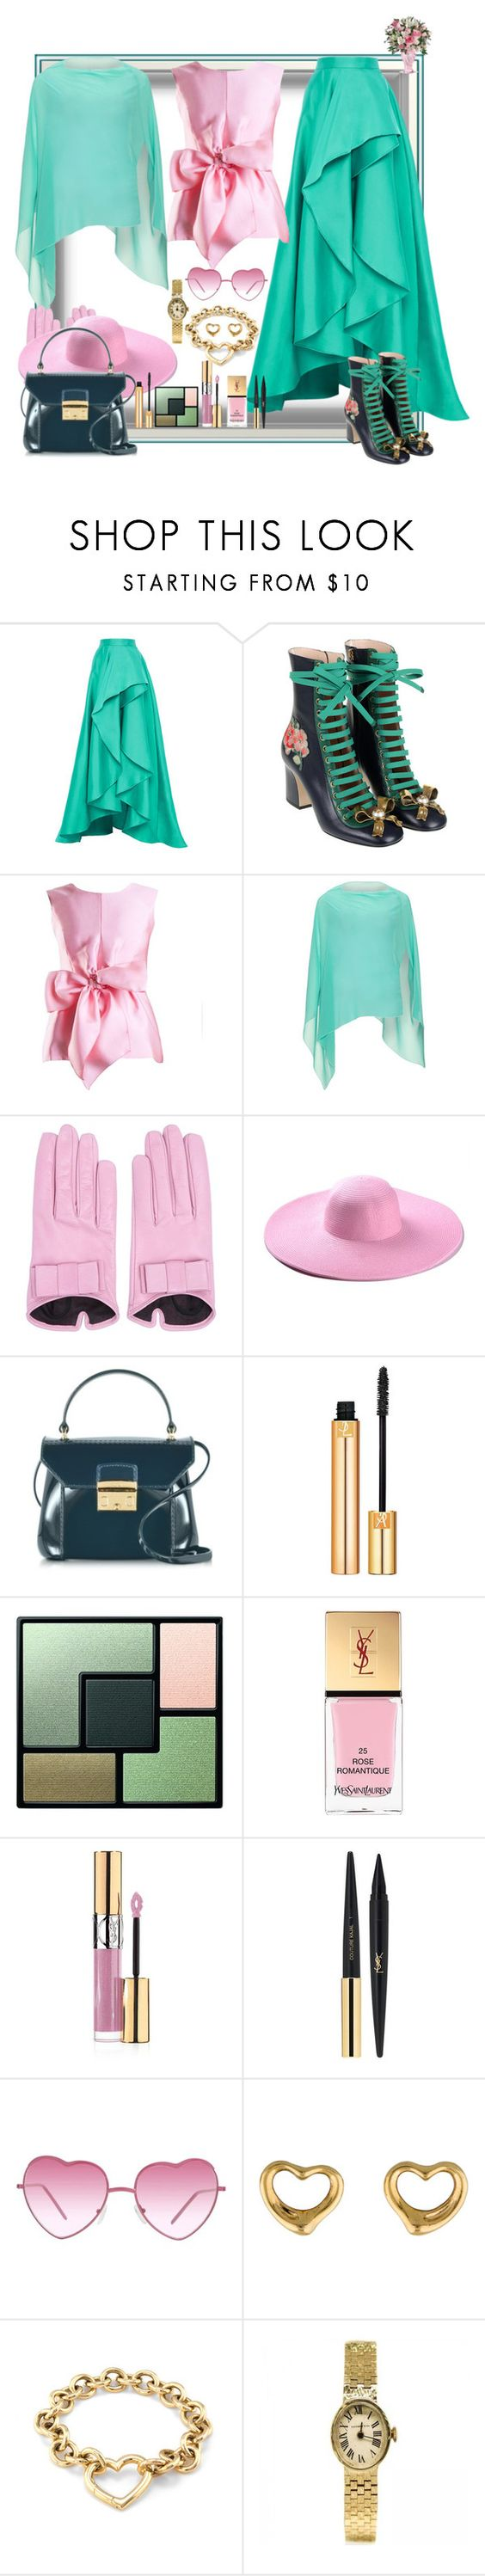 """Happy Mother's Day!"" by ritva-harjula on Polyvore featuring Monique Lhuillier, Olympia Le-Tan, Yanny London, Steilmann, Mario Portolano, Furla, Yves Saint Laurent, Almost Famous and Tiffany & Co."